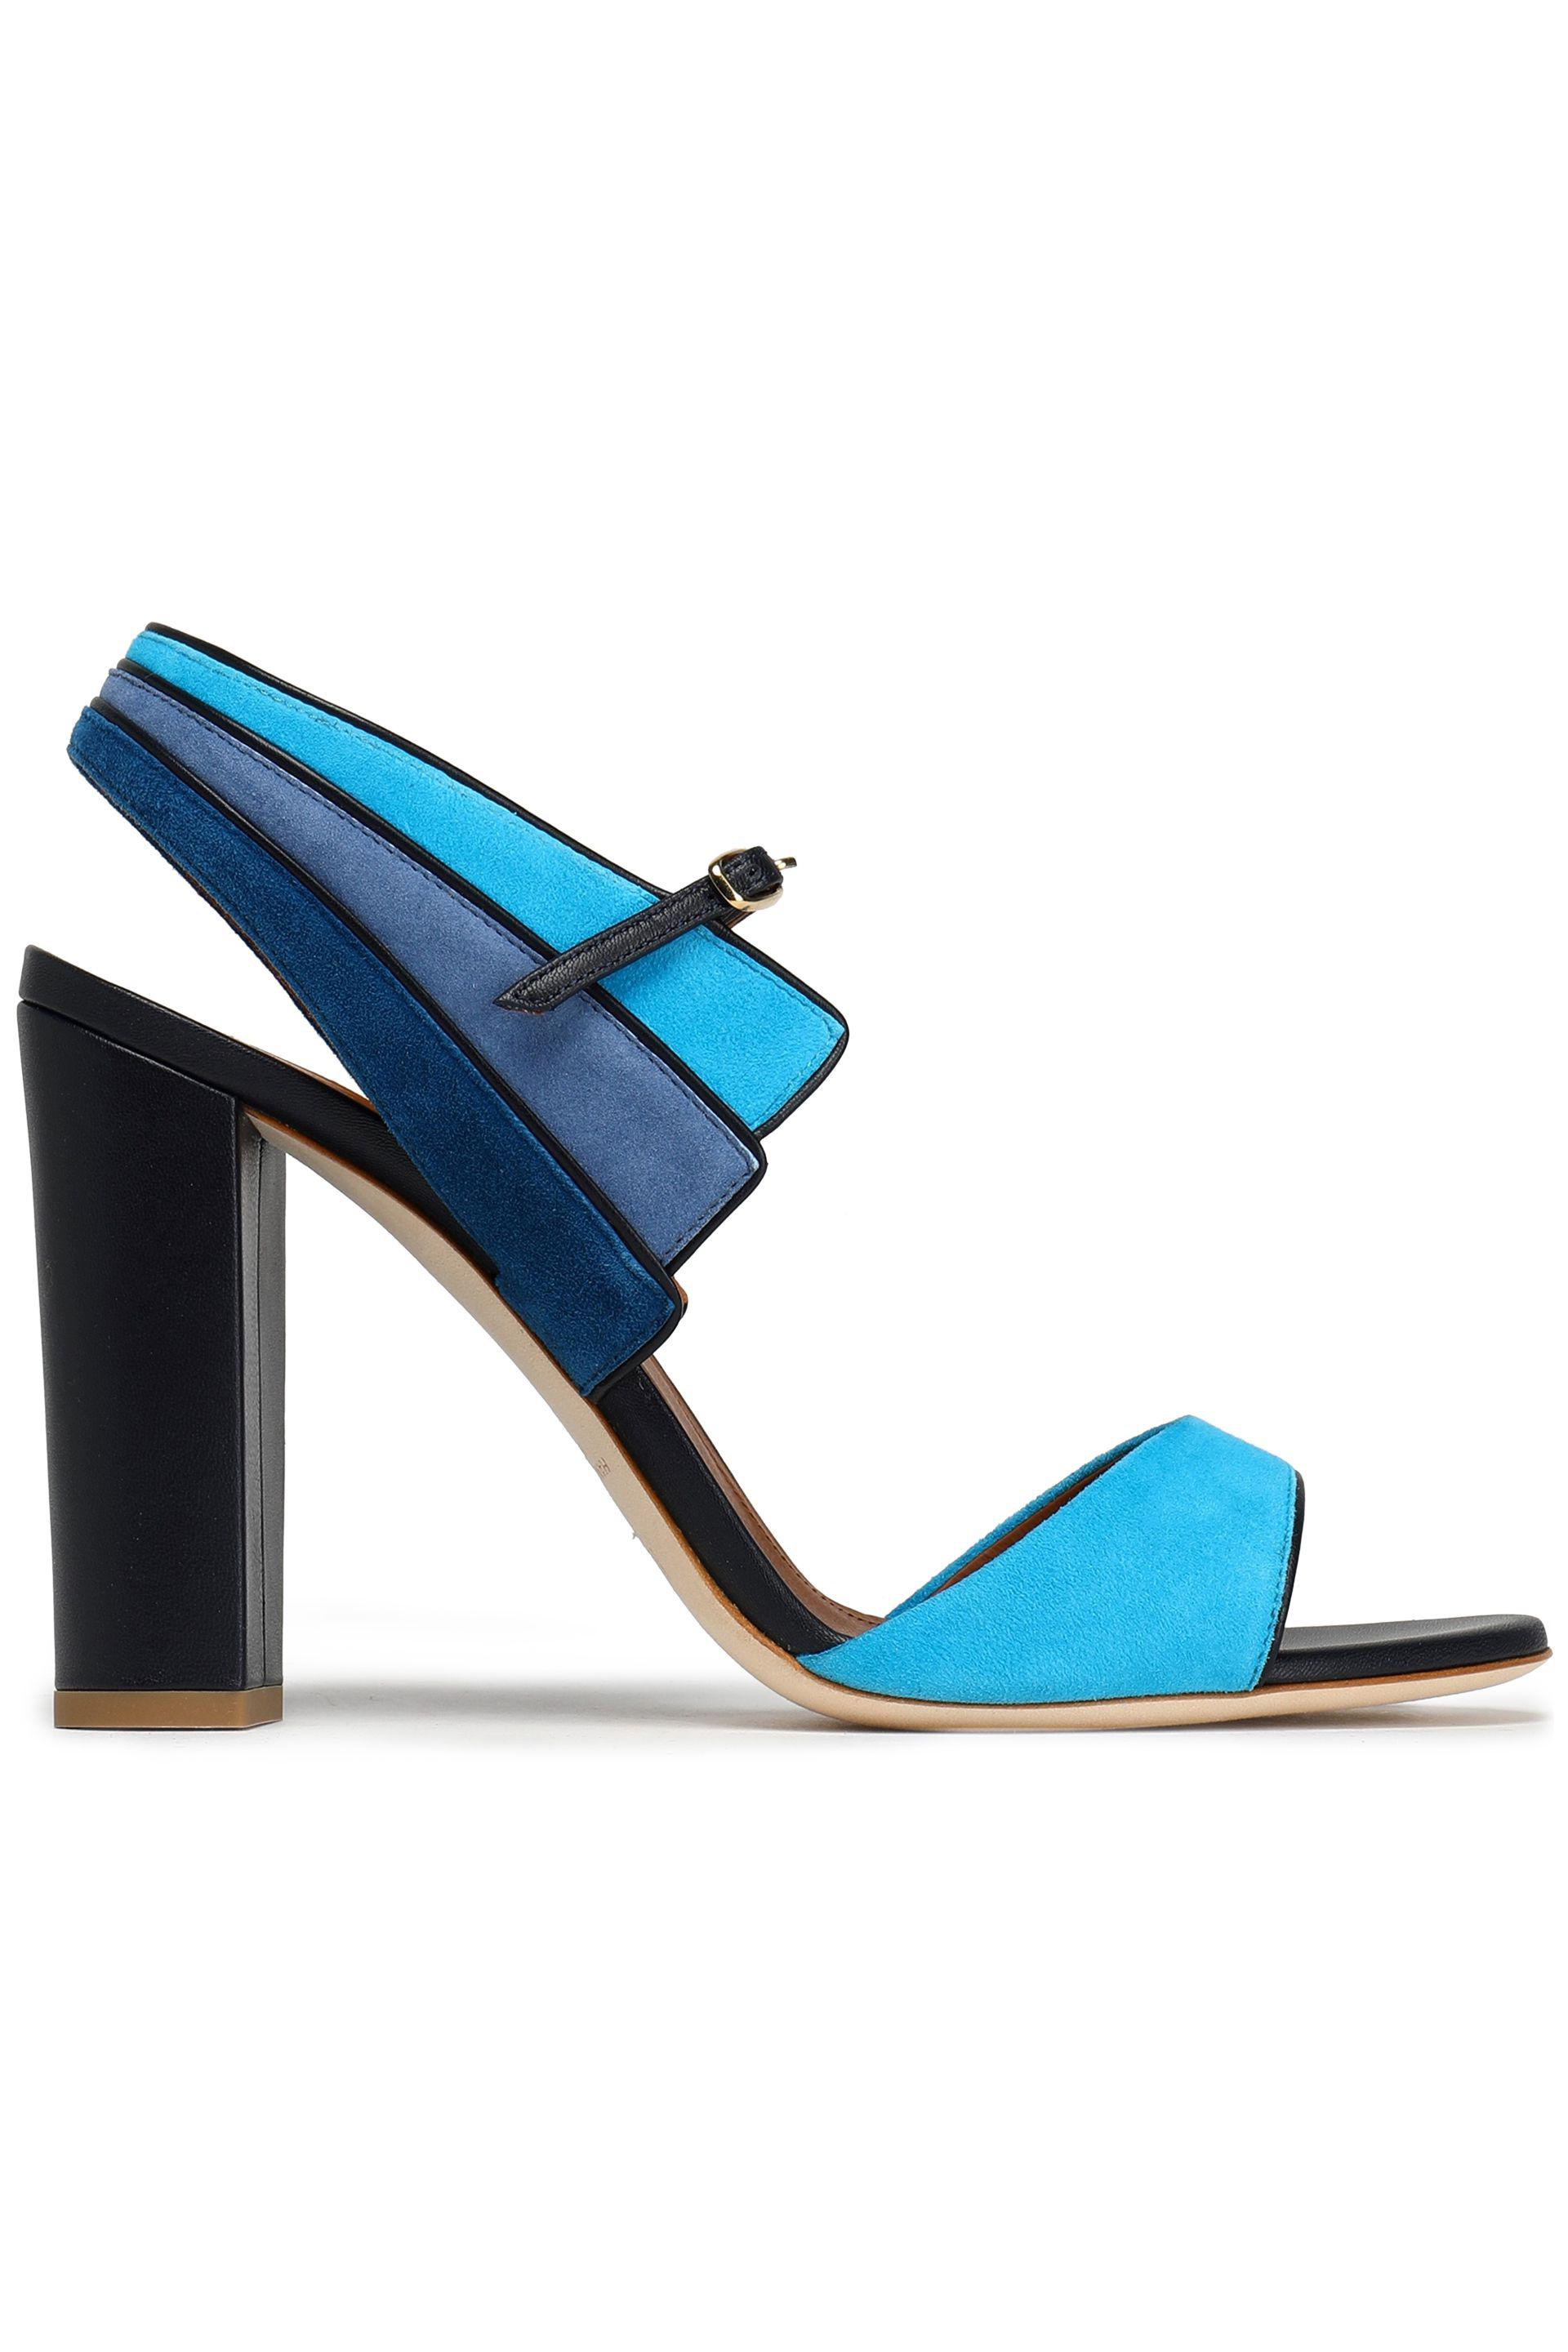 Malone Souliers Woman Leather And Suede Platform Sandals Blue Size 35 Malone Souliers HFW9V